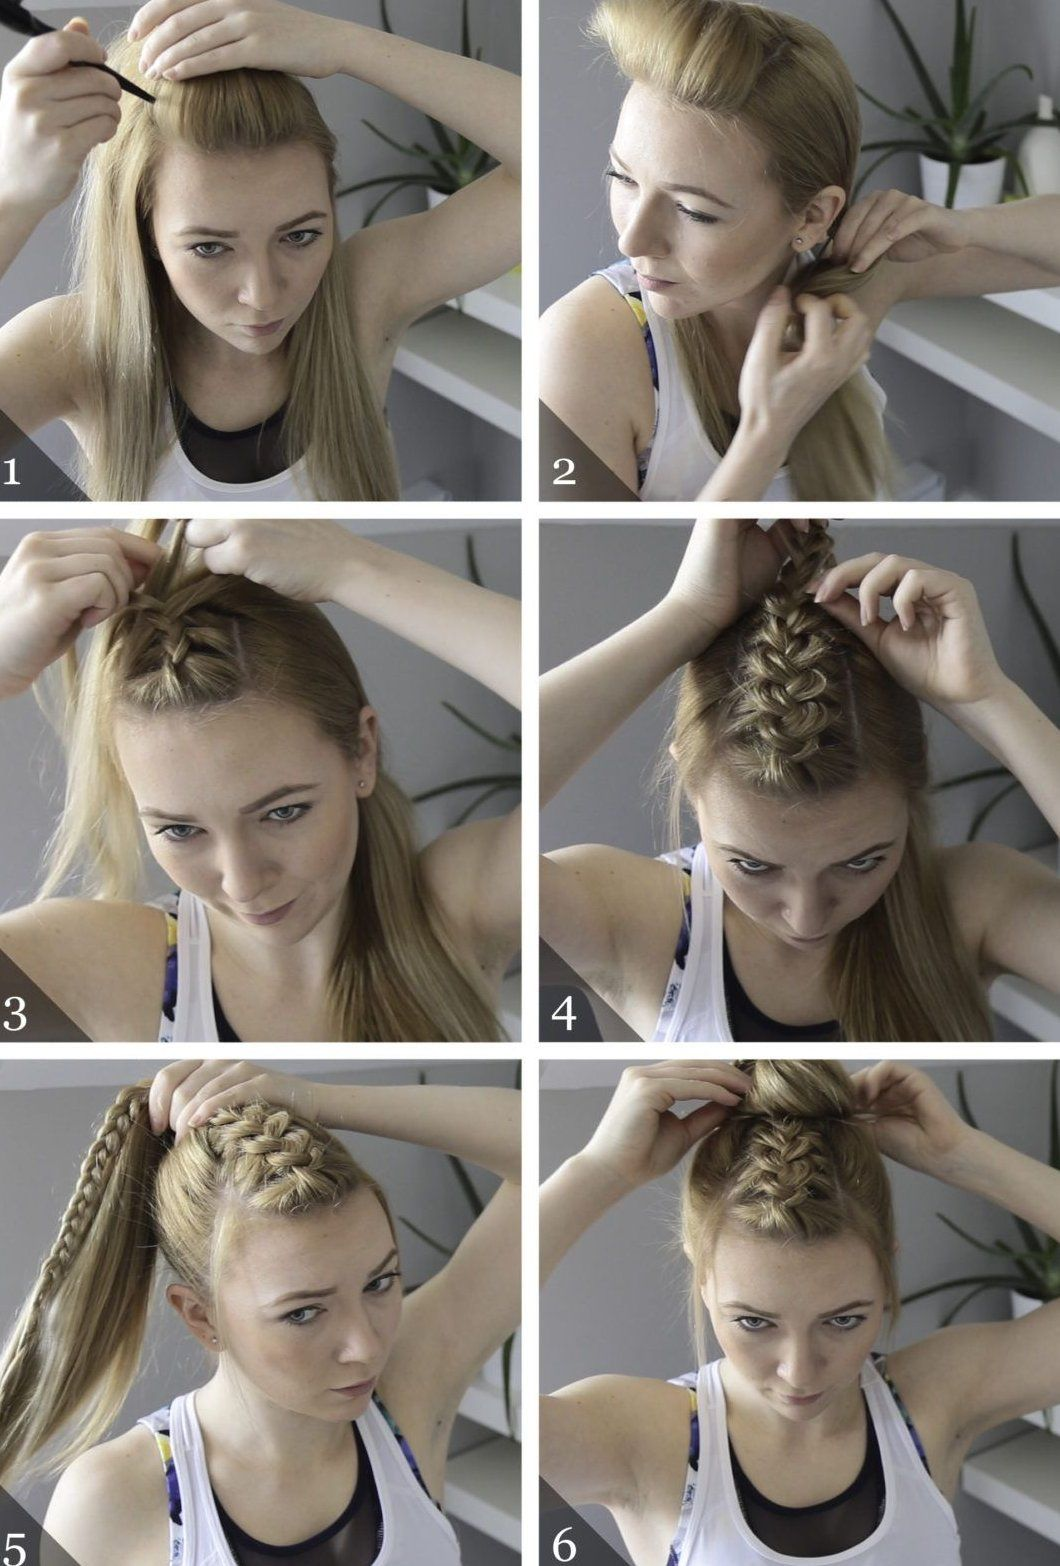 High Pony With Braid This Is An Easy Way To Dress Up A Simple Pony Great For A Day When Sporty Hairstyles Volleyball Hairstyles Easy Hairstyles For Long Hair